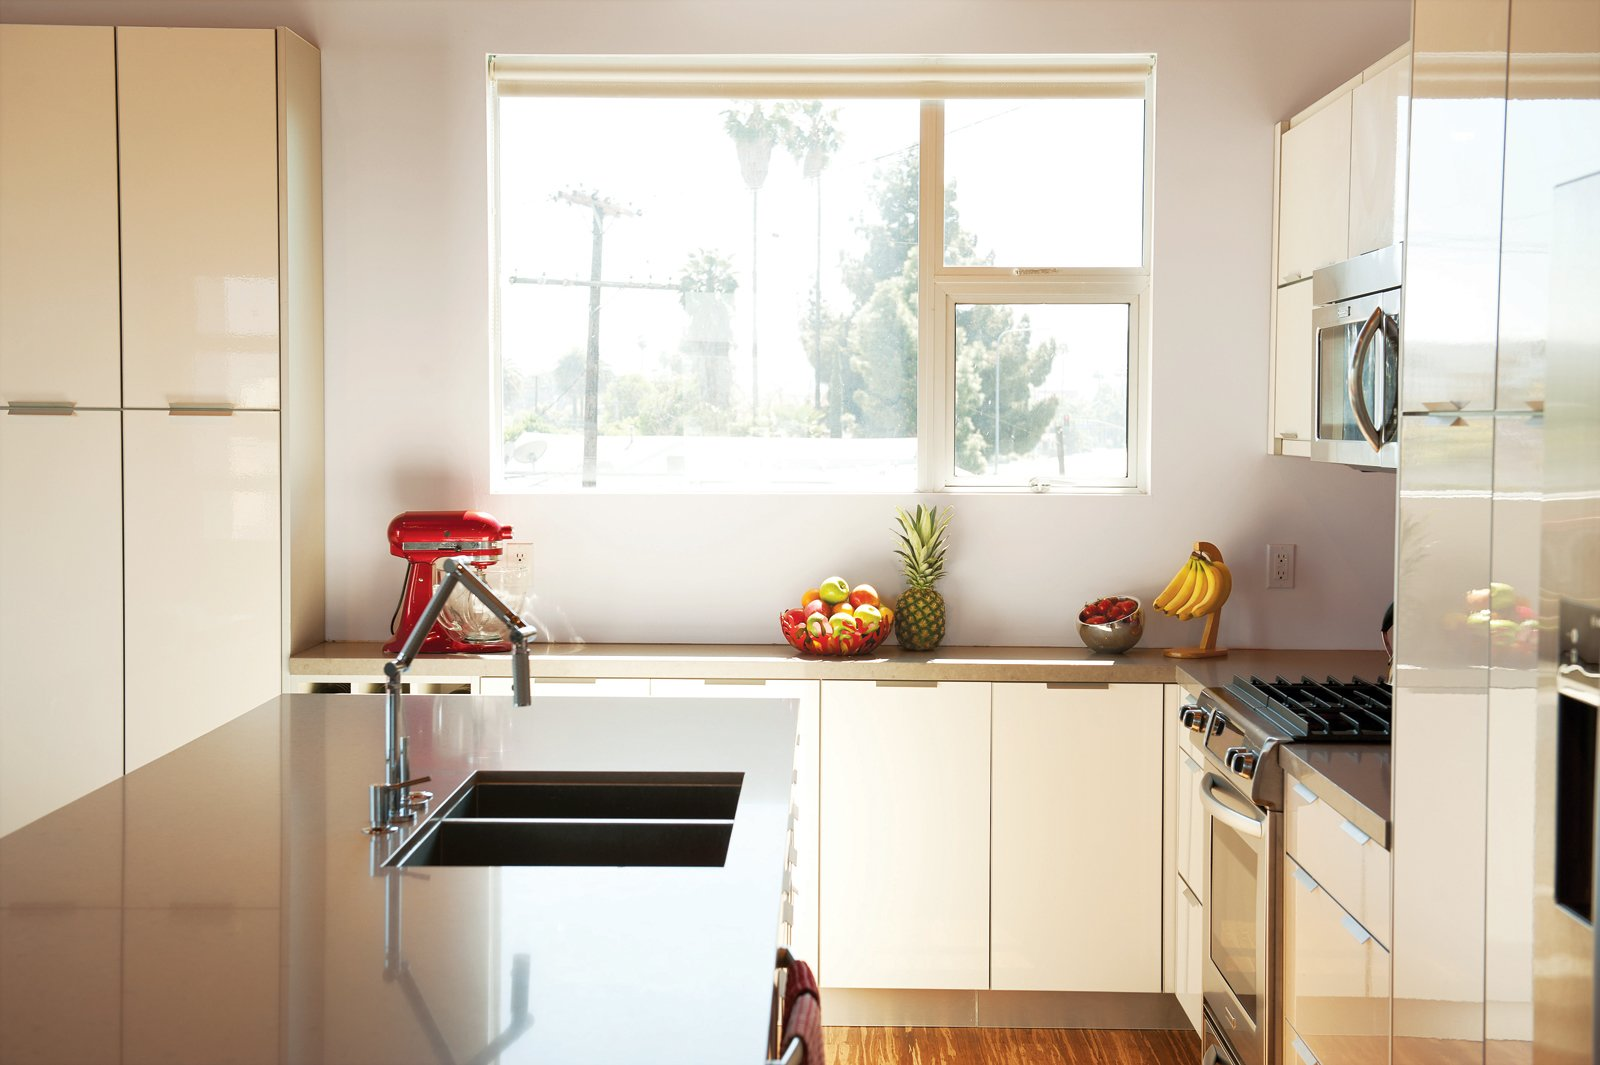 In the kitchen, she splurged on a Karbon faucet from Kohler.  Photo 3 of 13 in 131-Day House